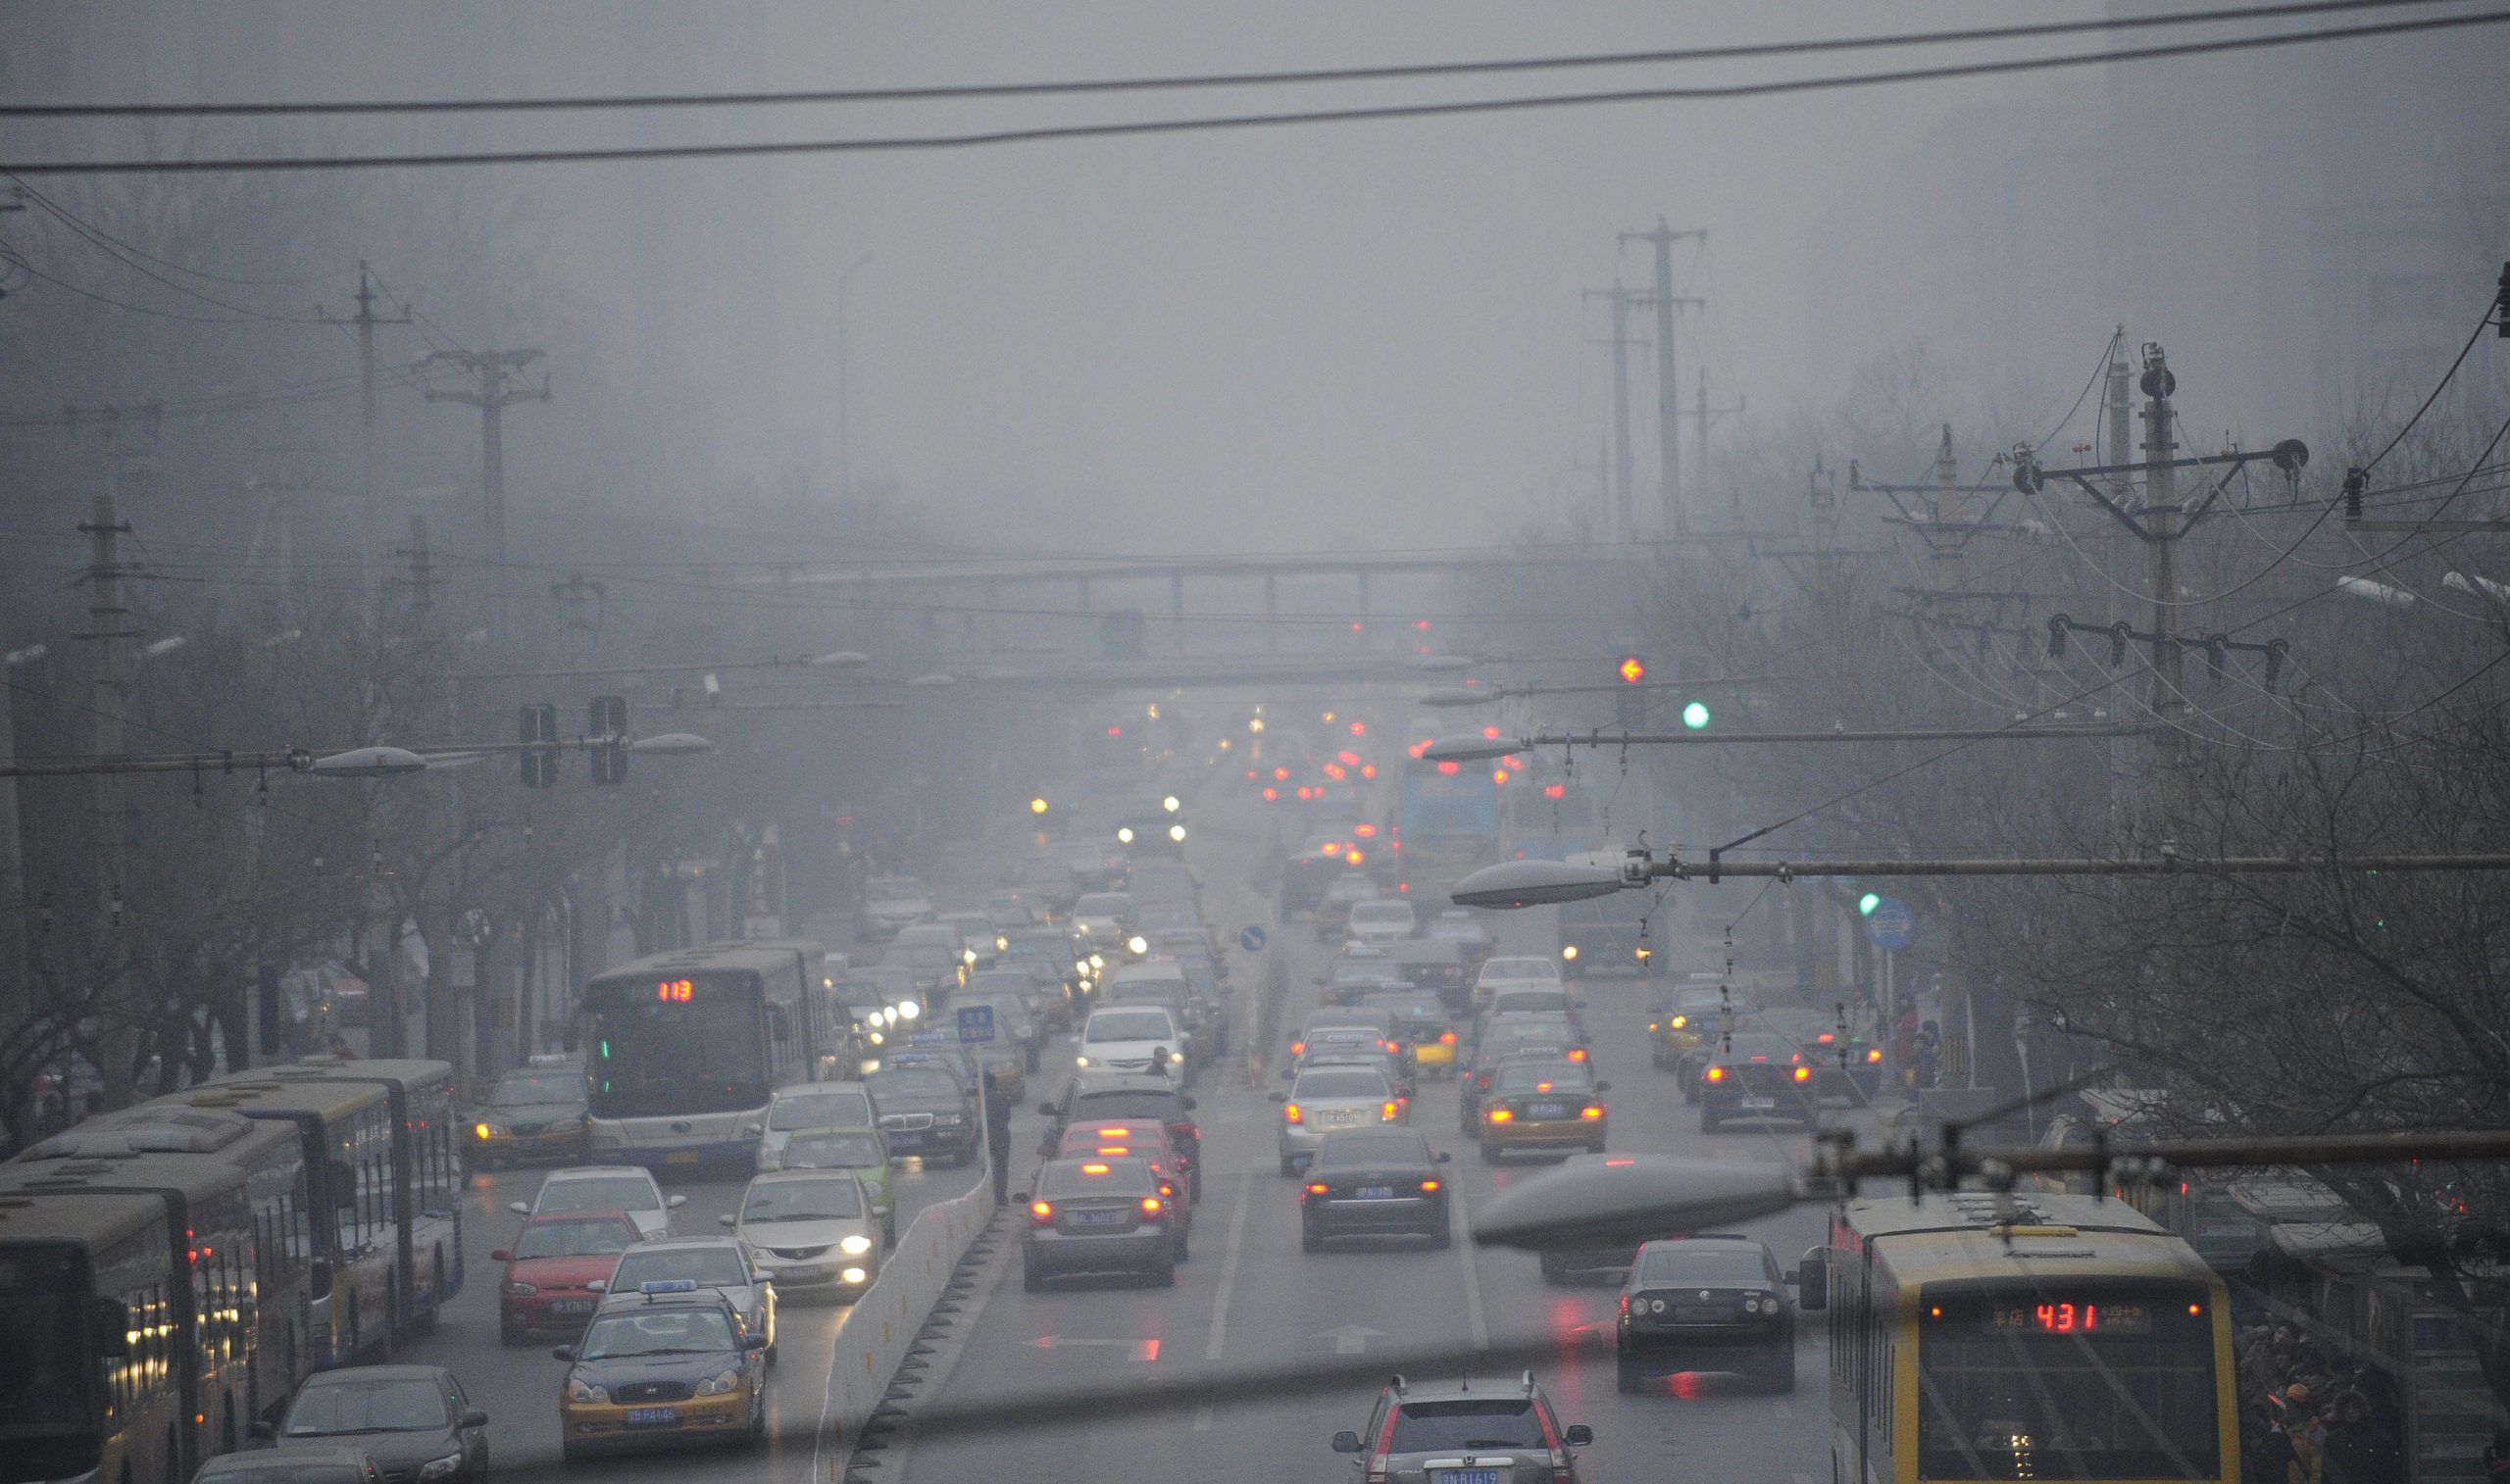 """Cars pass along a road in thick smog in Beijing on February 21, 2011. Beijing went """"beyond"""" measurable pollution levels, the US embassy said, as a Chinese official warned people to stay indoors and avoid outdoor activities. Air pollution in Beijing has been consistently listed as among the worst in the world by international organisations such as the United Nations.             AFP PHOTO/GOH CHAI HIN (Photo credit should read GOH CHAI HIN/AFP/Getty Images)"""